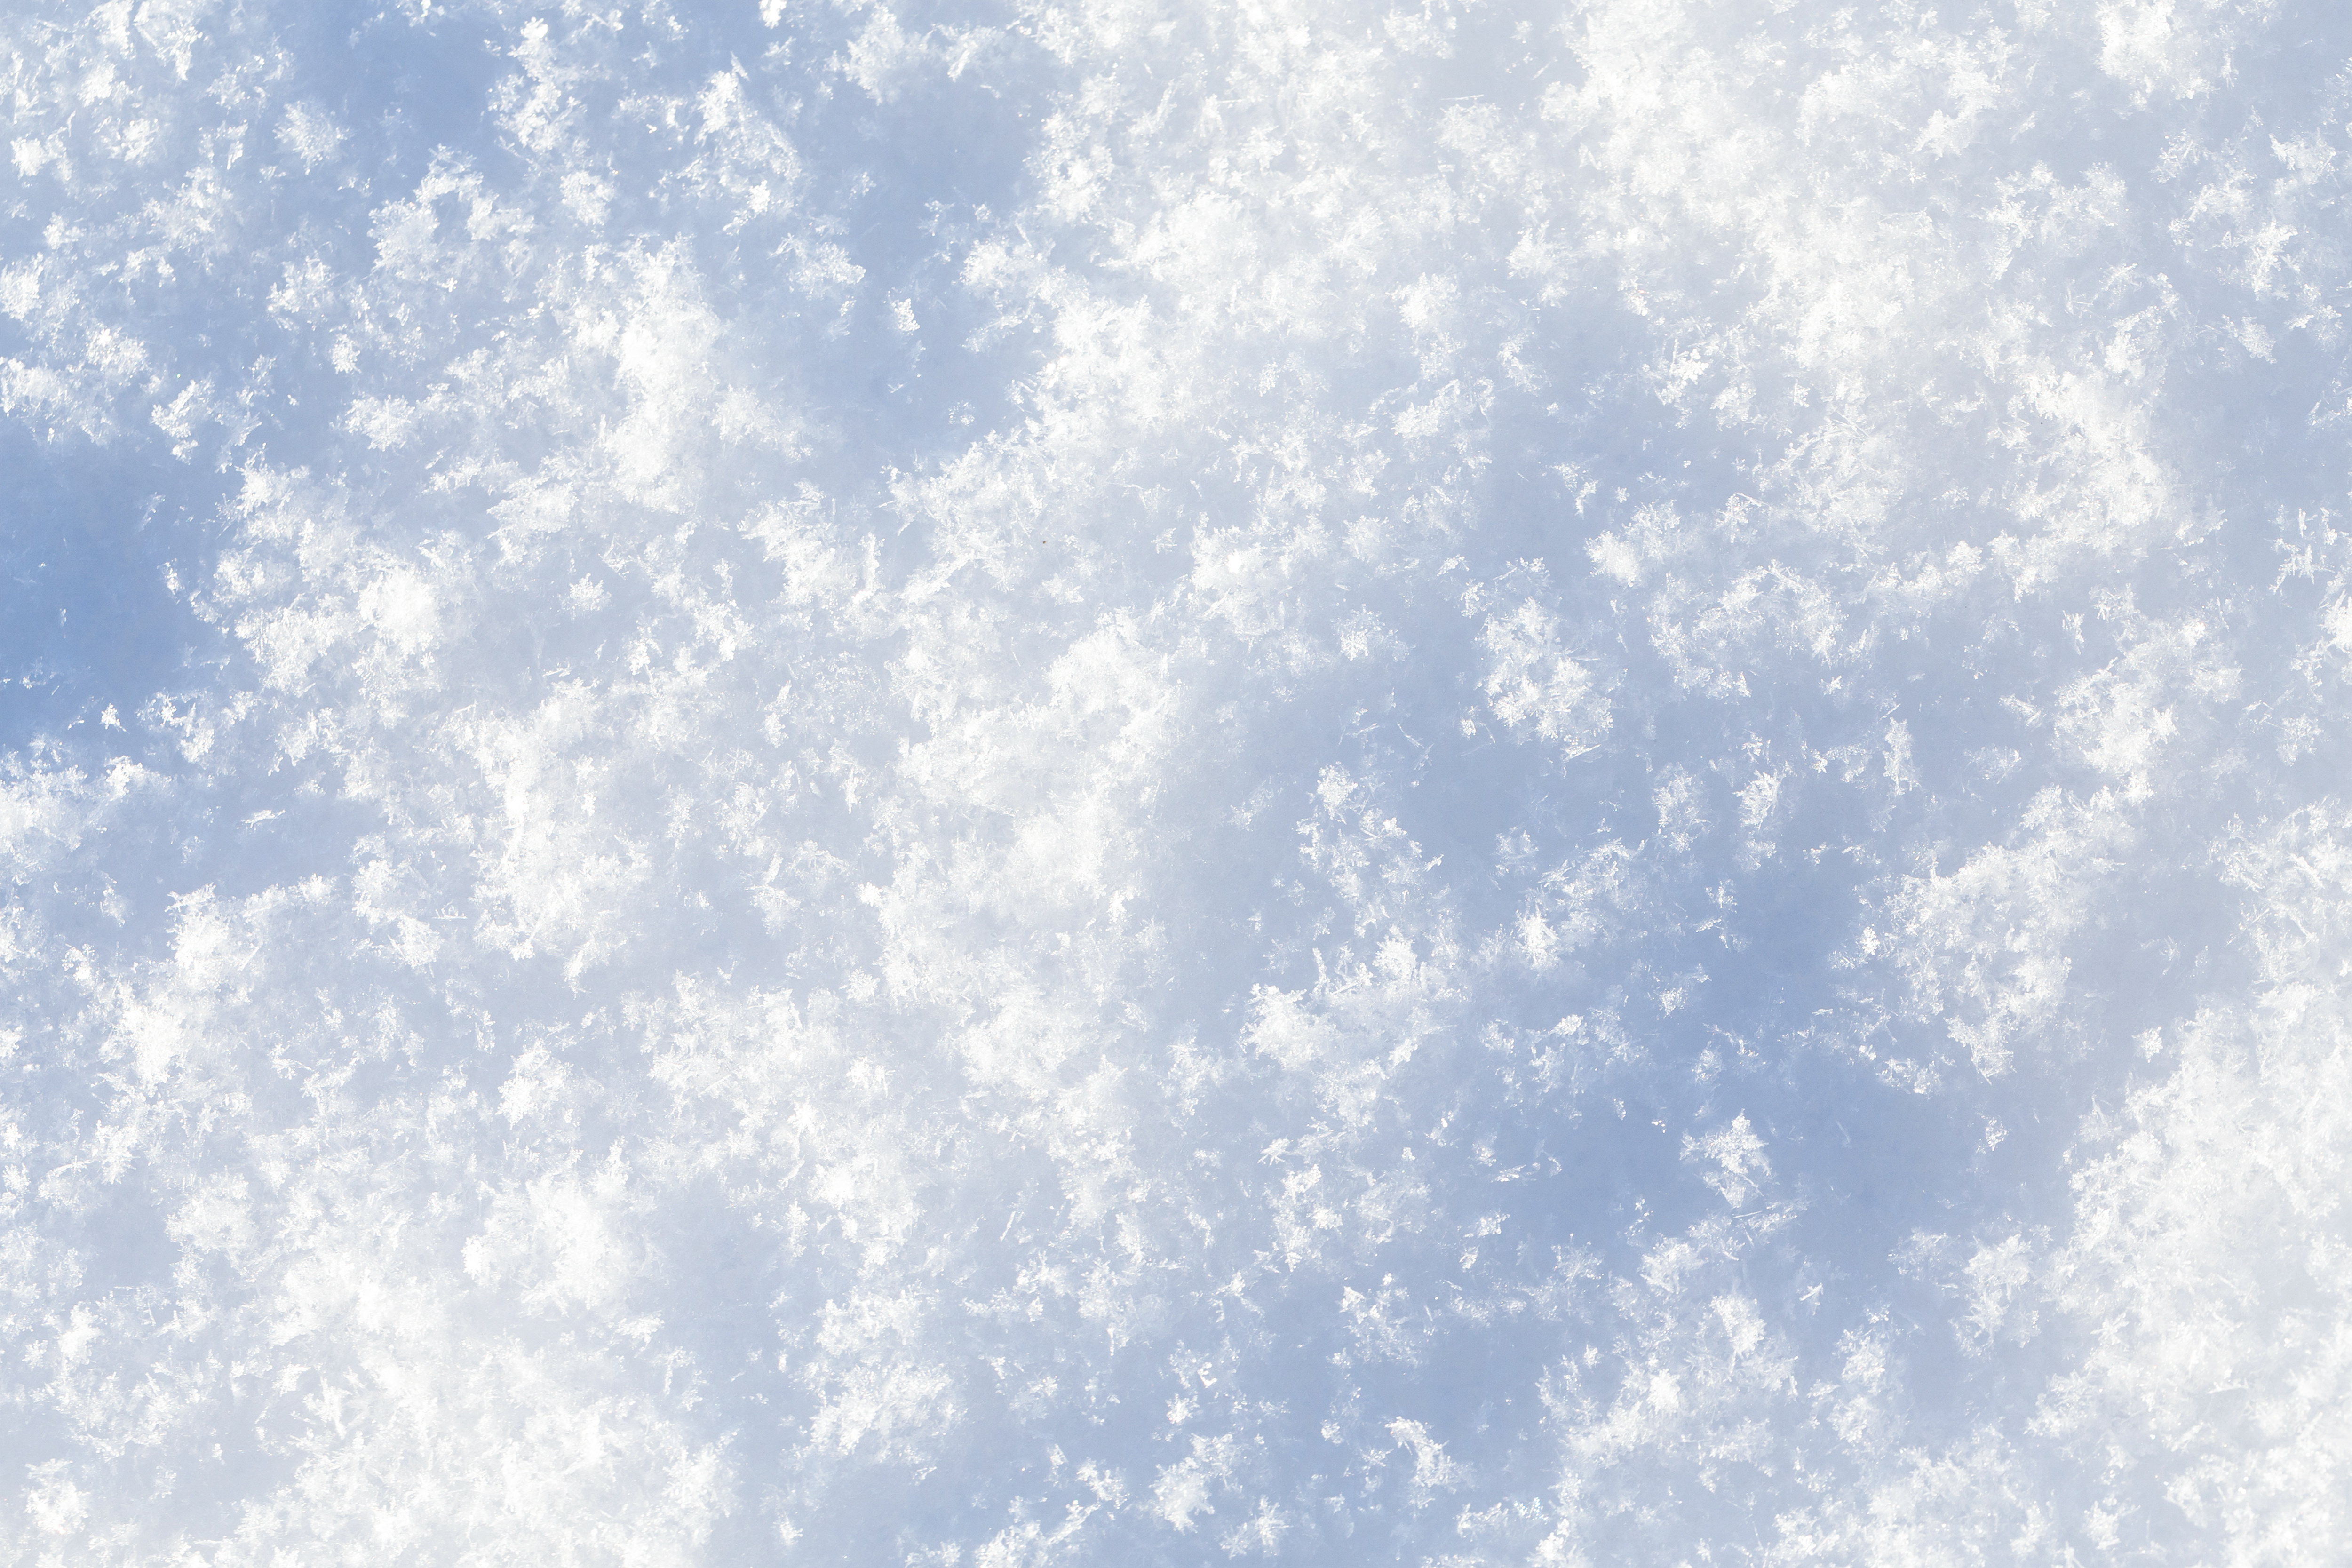 Snow Texture Background Gallery Yopriceville   High Quality 5000x3333